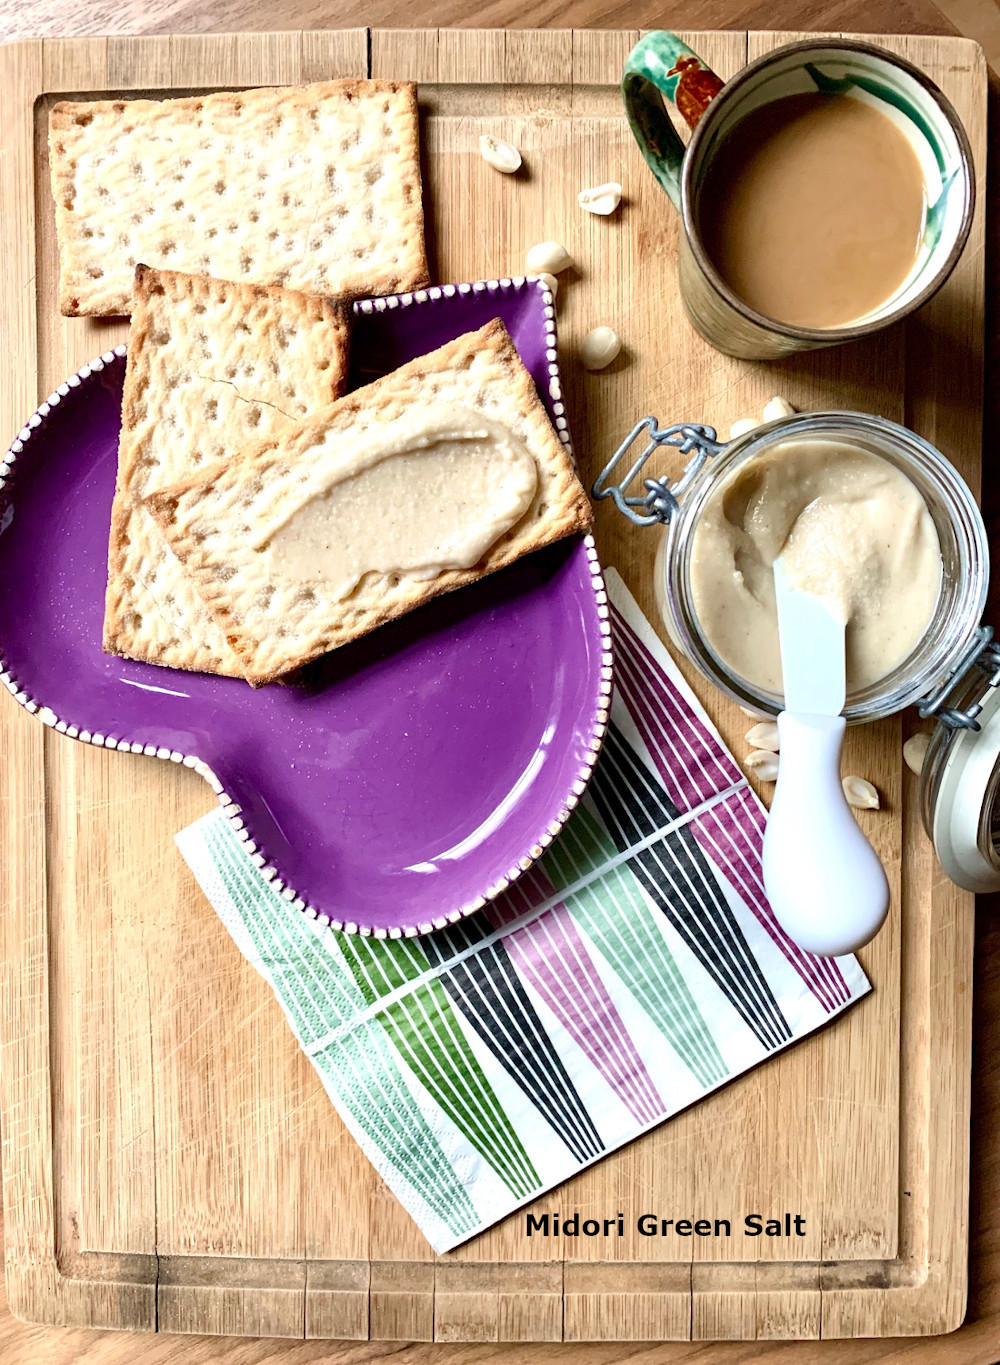 Home-made 10-minute peanut butter